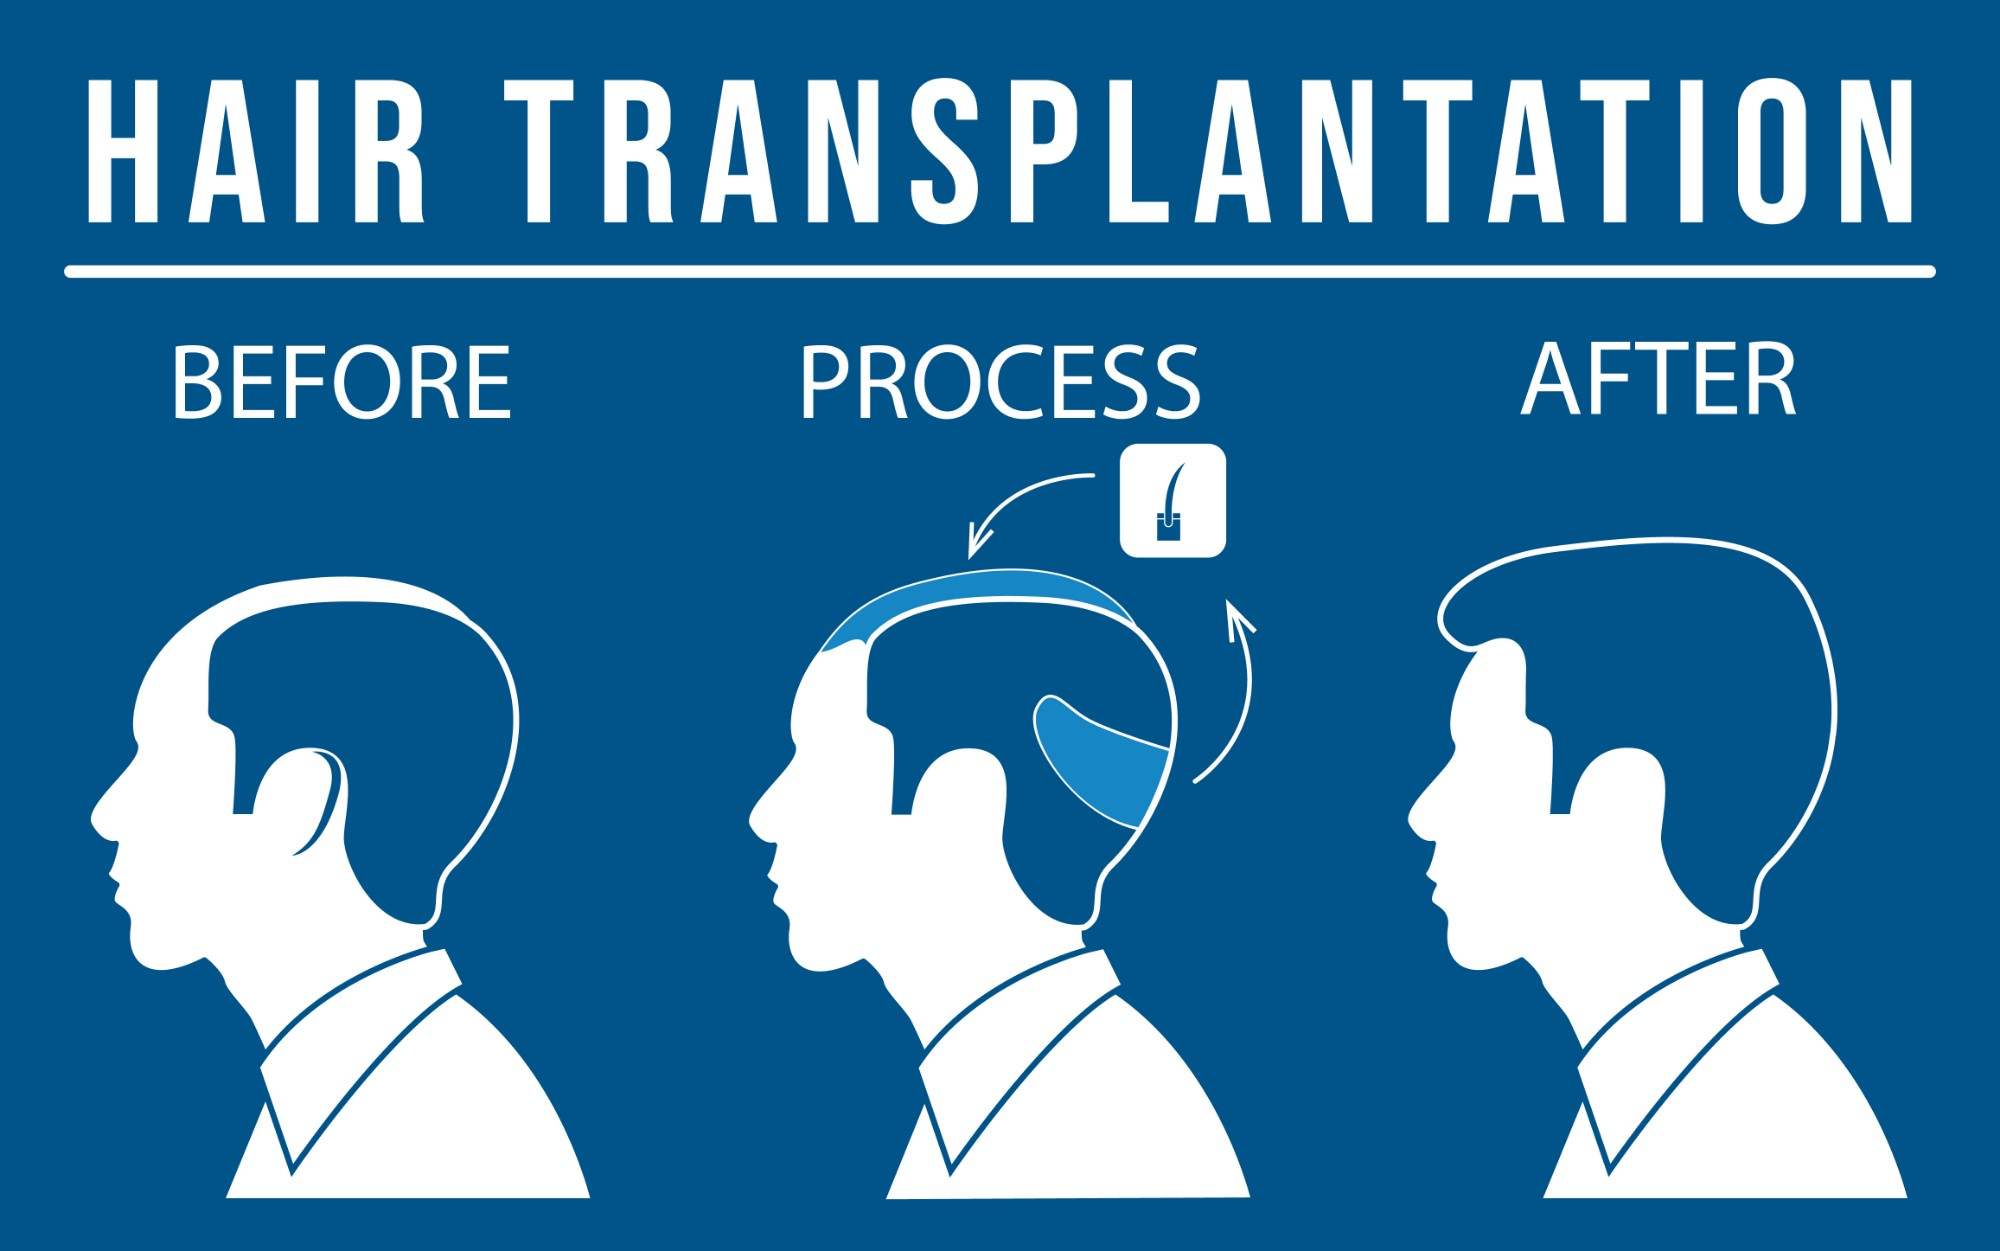 The Hair Transplantation Process.